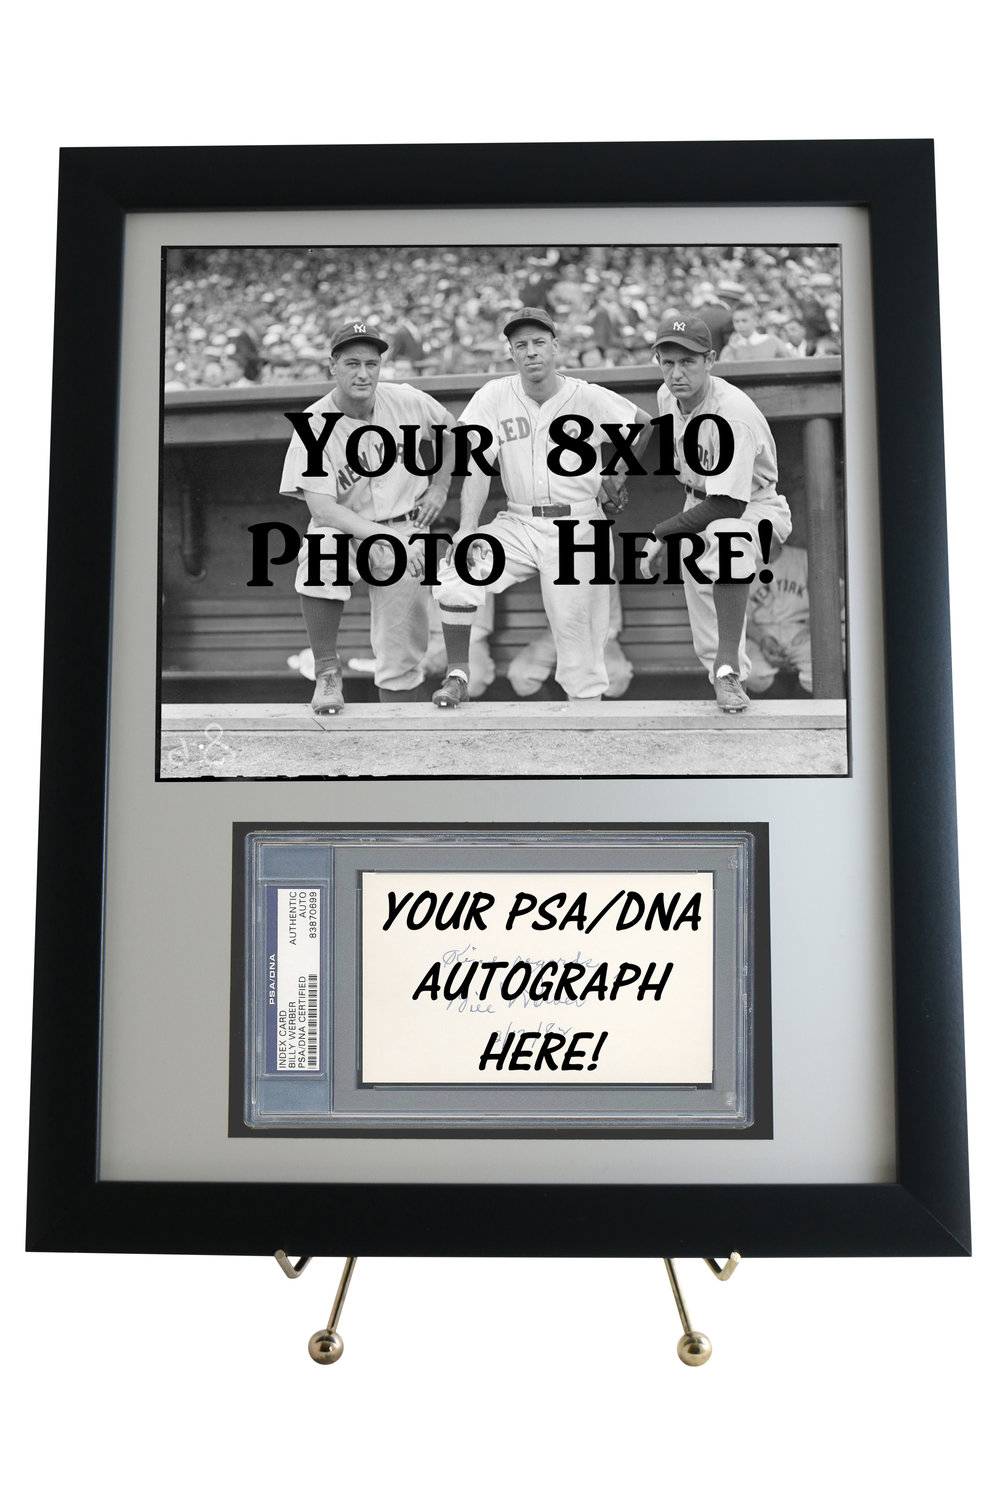 PSA/DNA SLABBED FRAMED DISPLAYS                       STARTING AT ONLY $39.95                 WITH OR WITHOUT 8X10 OPENING    MANY VARIATIONS/OPTIONS TO CHOOSE FROM!